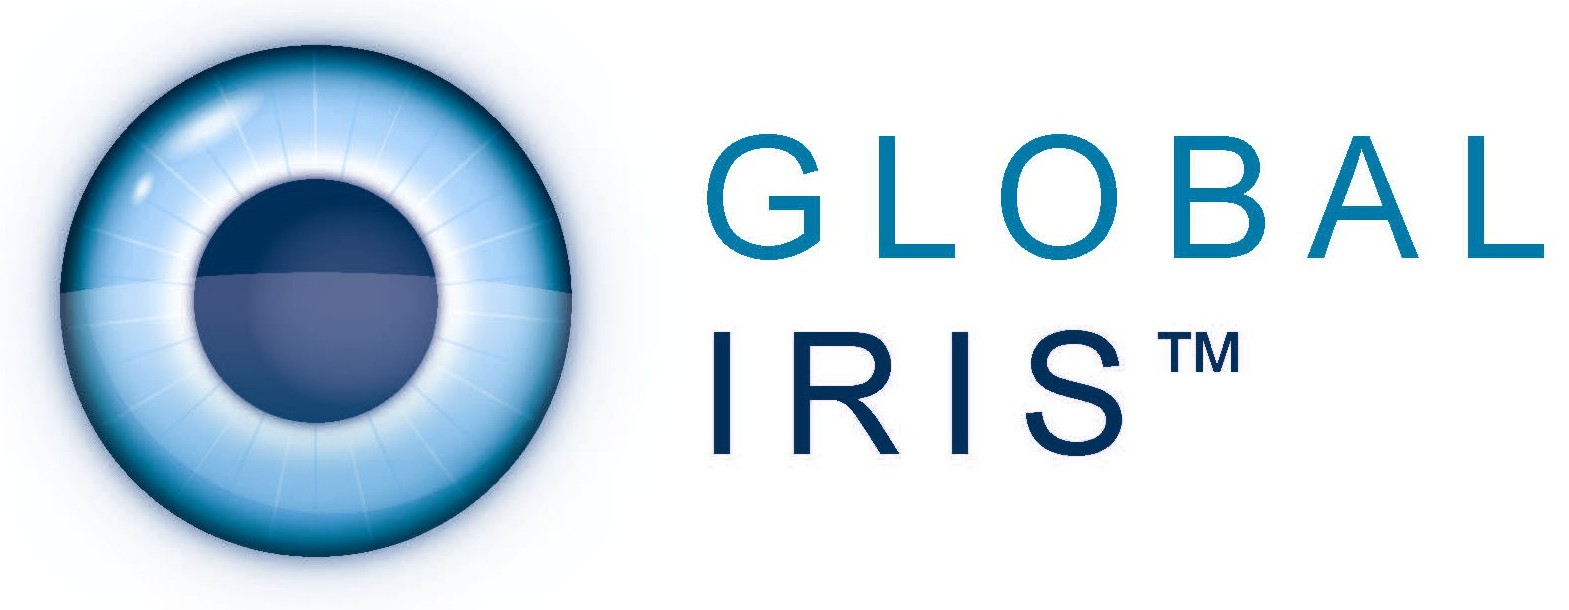 global-iris-logo-tm-jpeg2.jpg